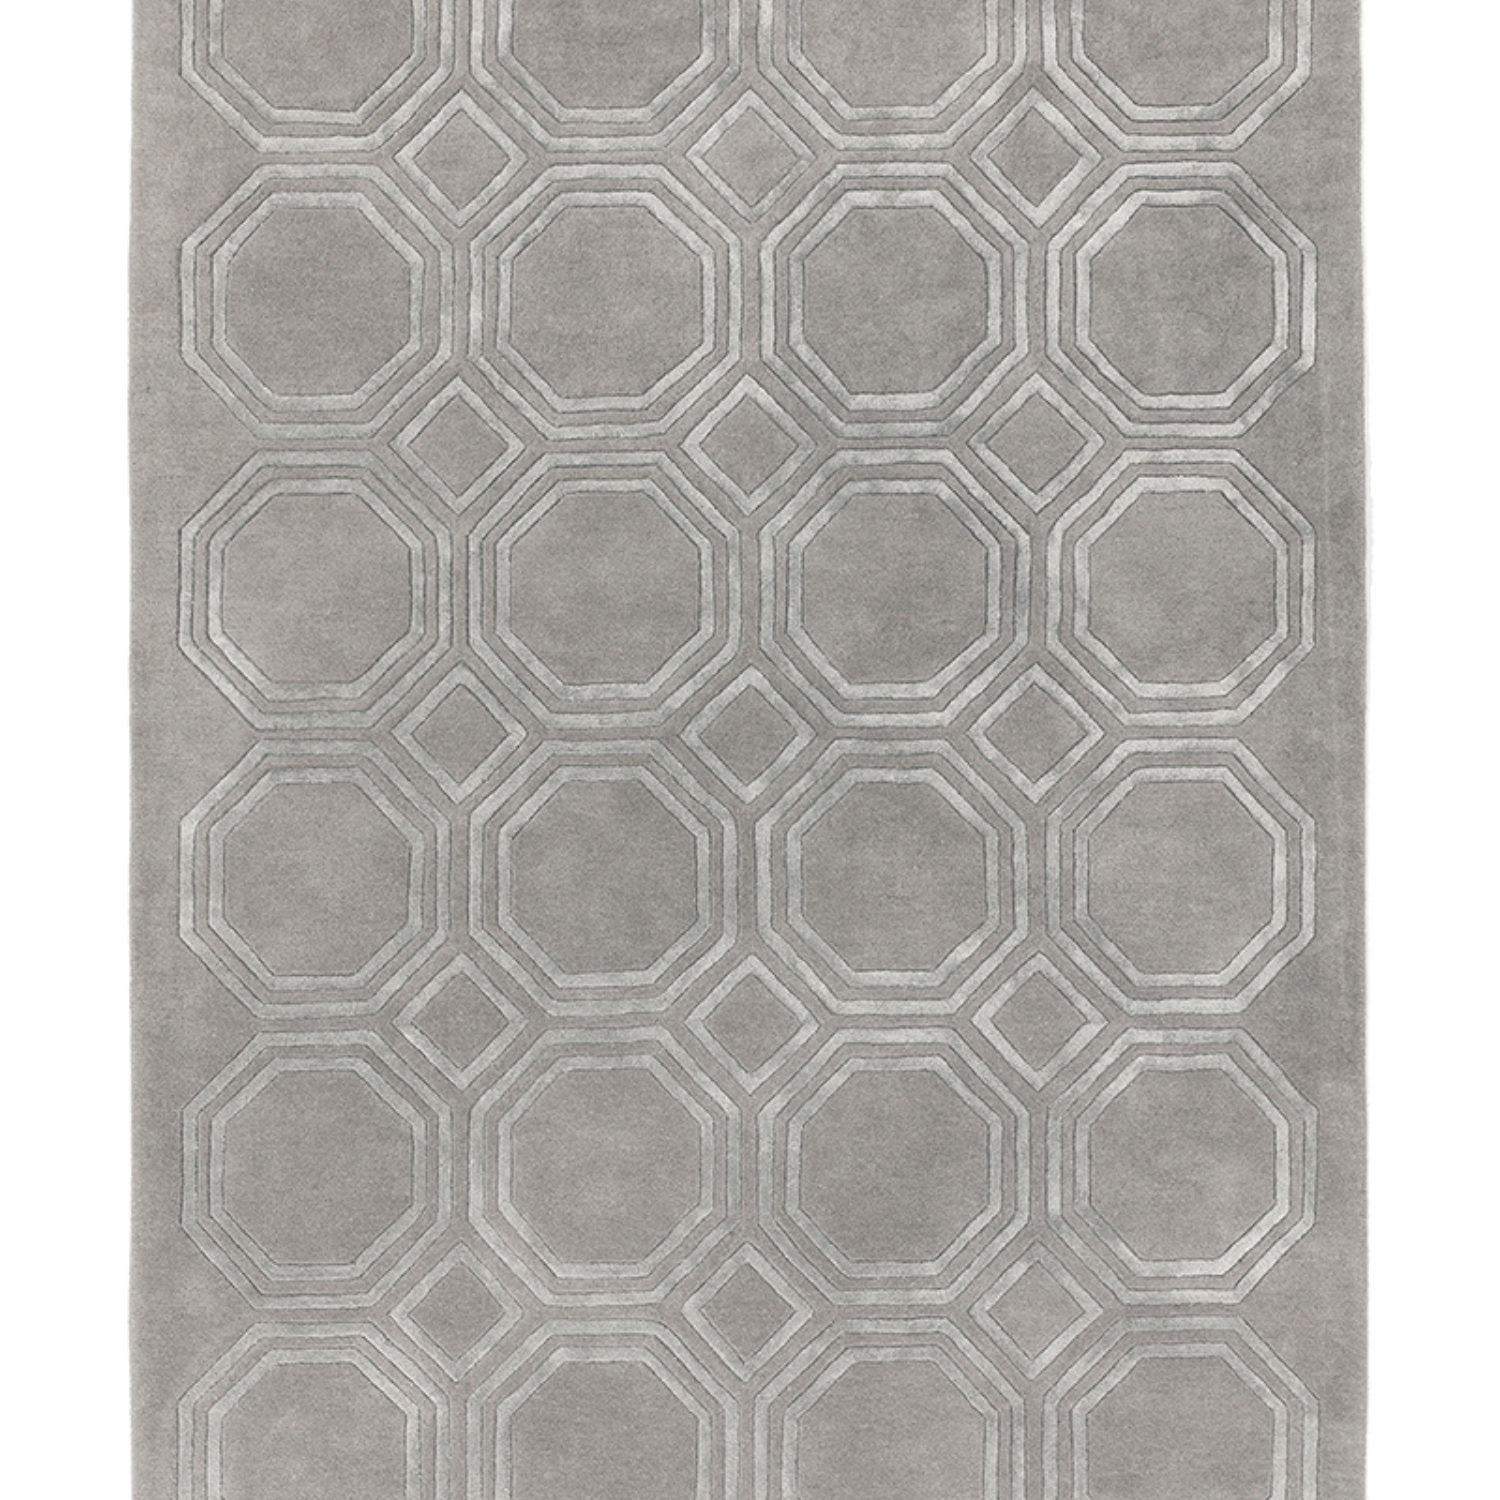 Prenium quality tufted rugs in precise hand carved geometric designs